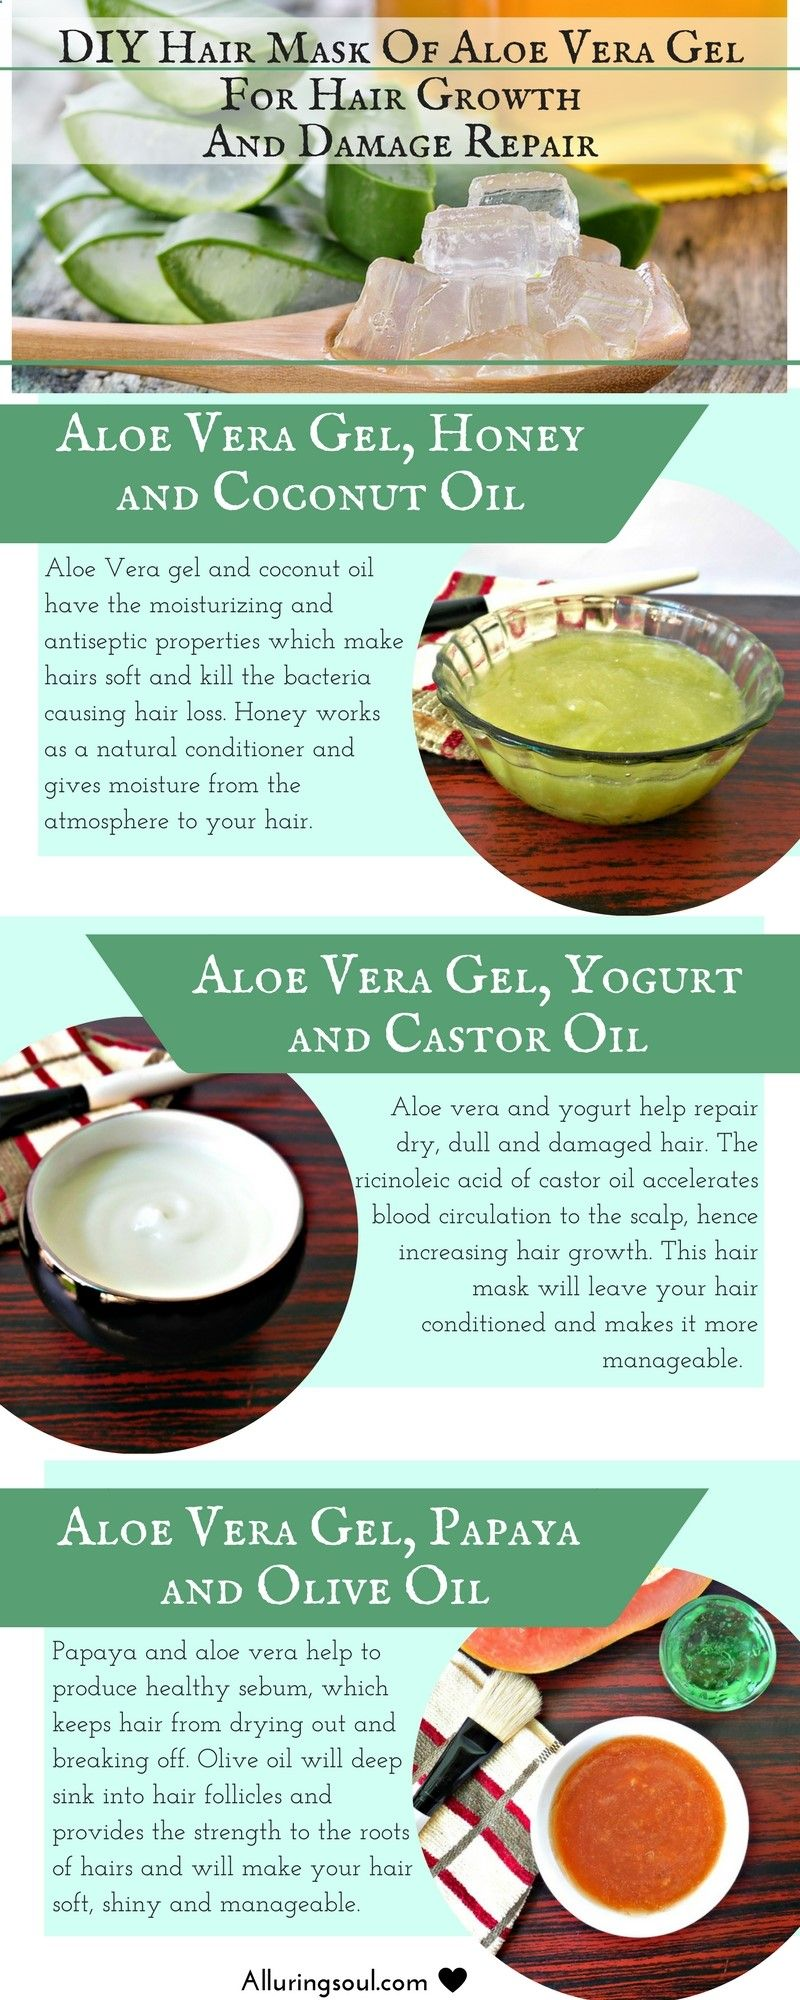 Apply hair mask of aloe vera gel which promotes hair